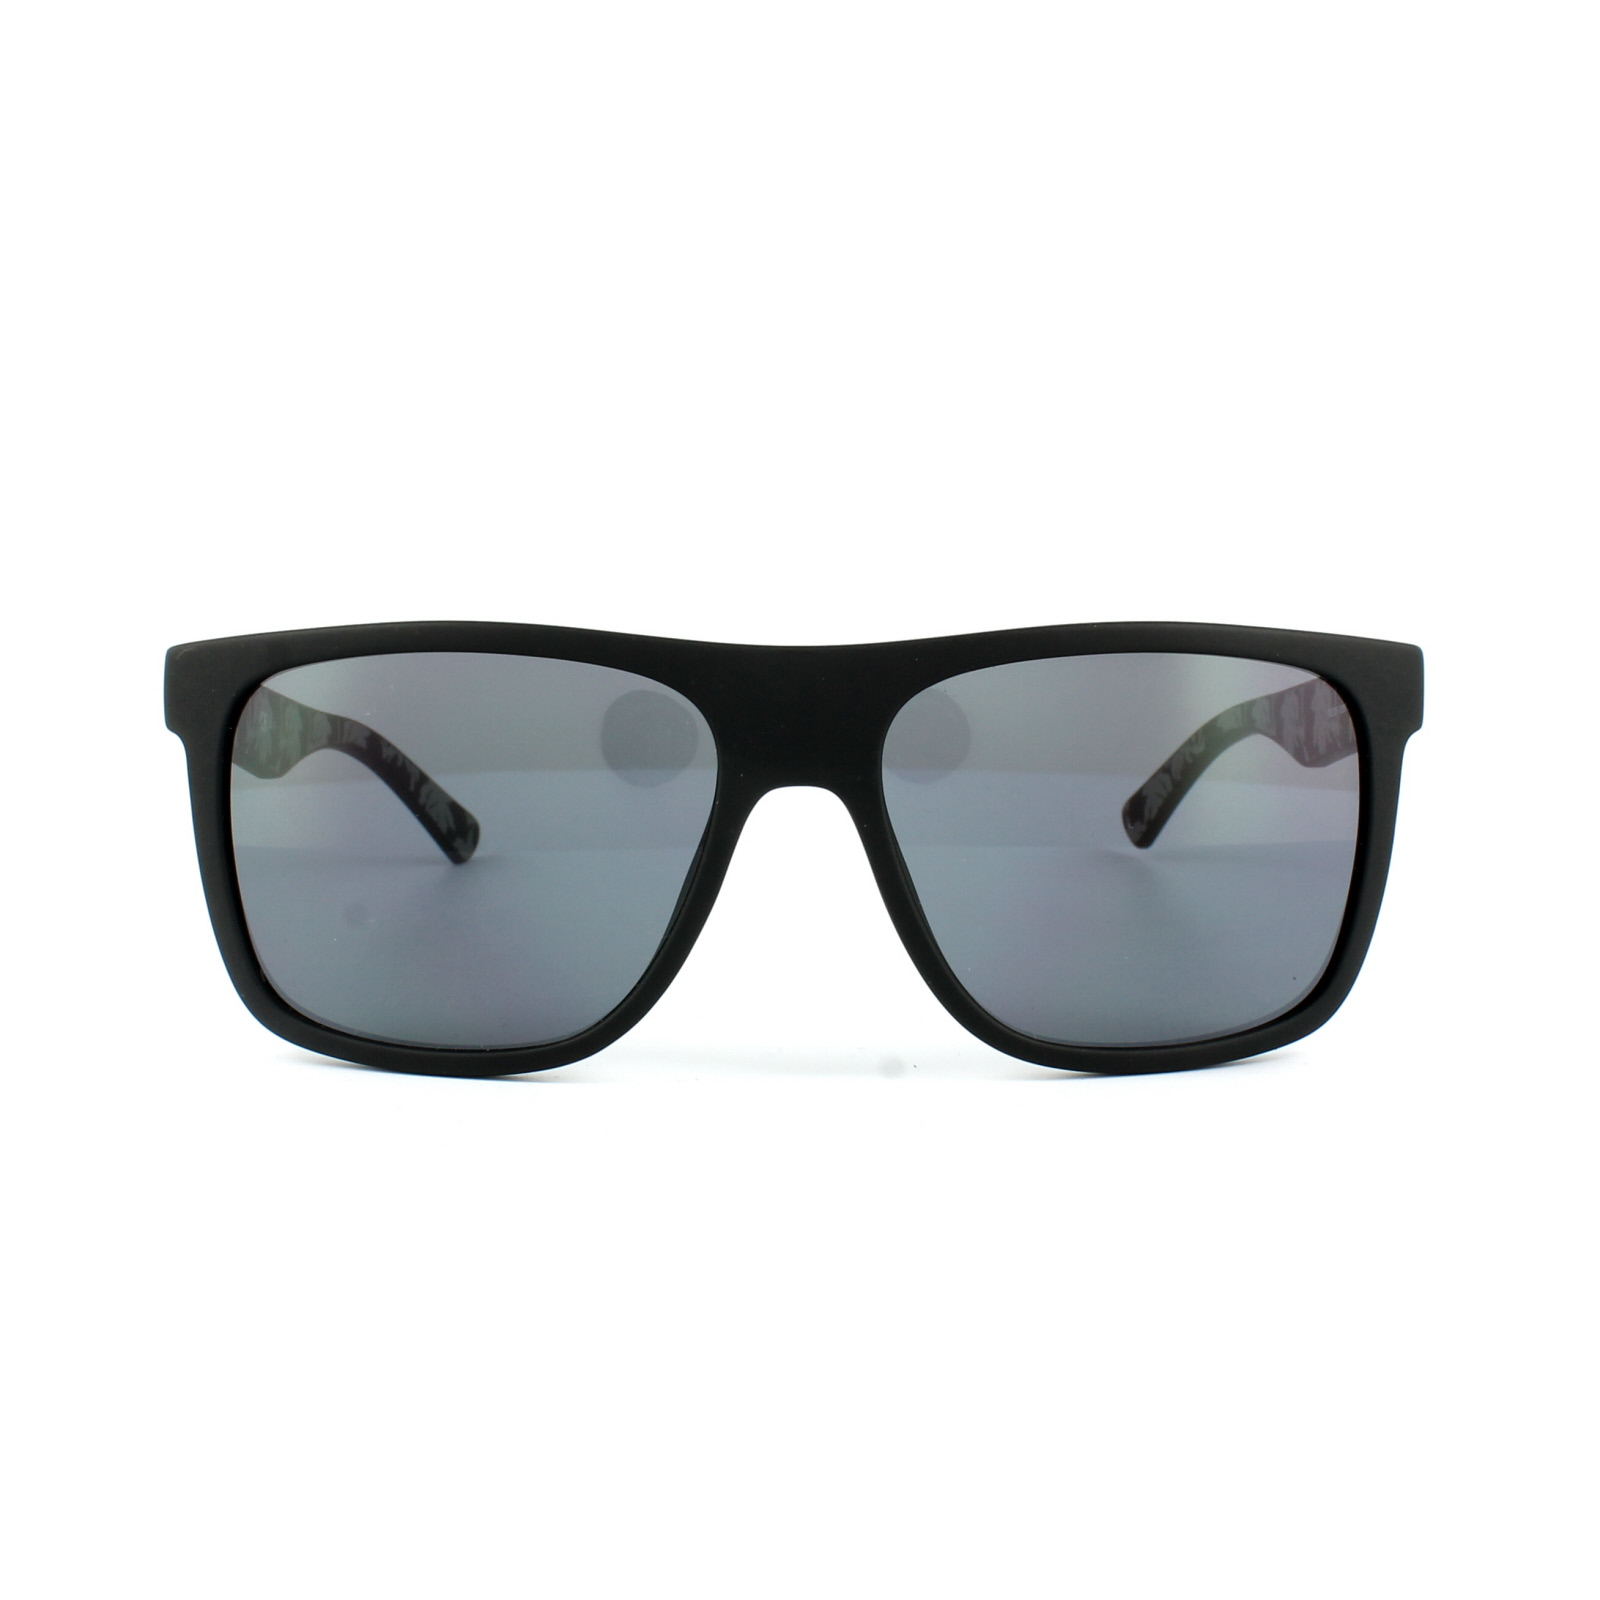 4fbbe1f74f6 Sentinel Boss Orange Sunglasses 0253 Q80 BN Black Dark Grey